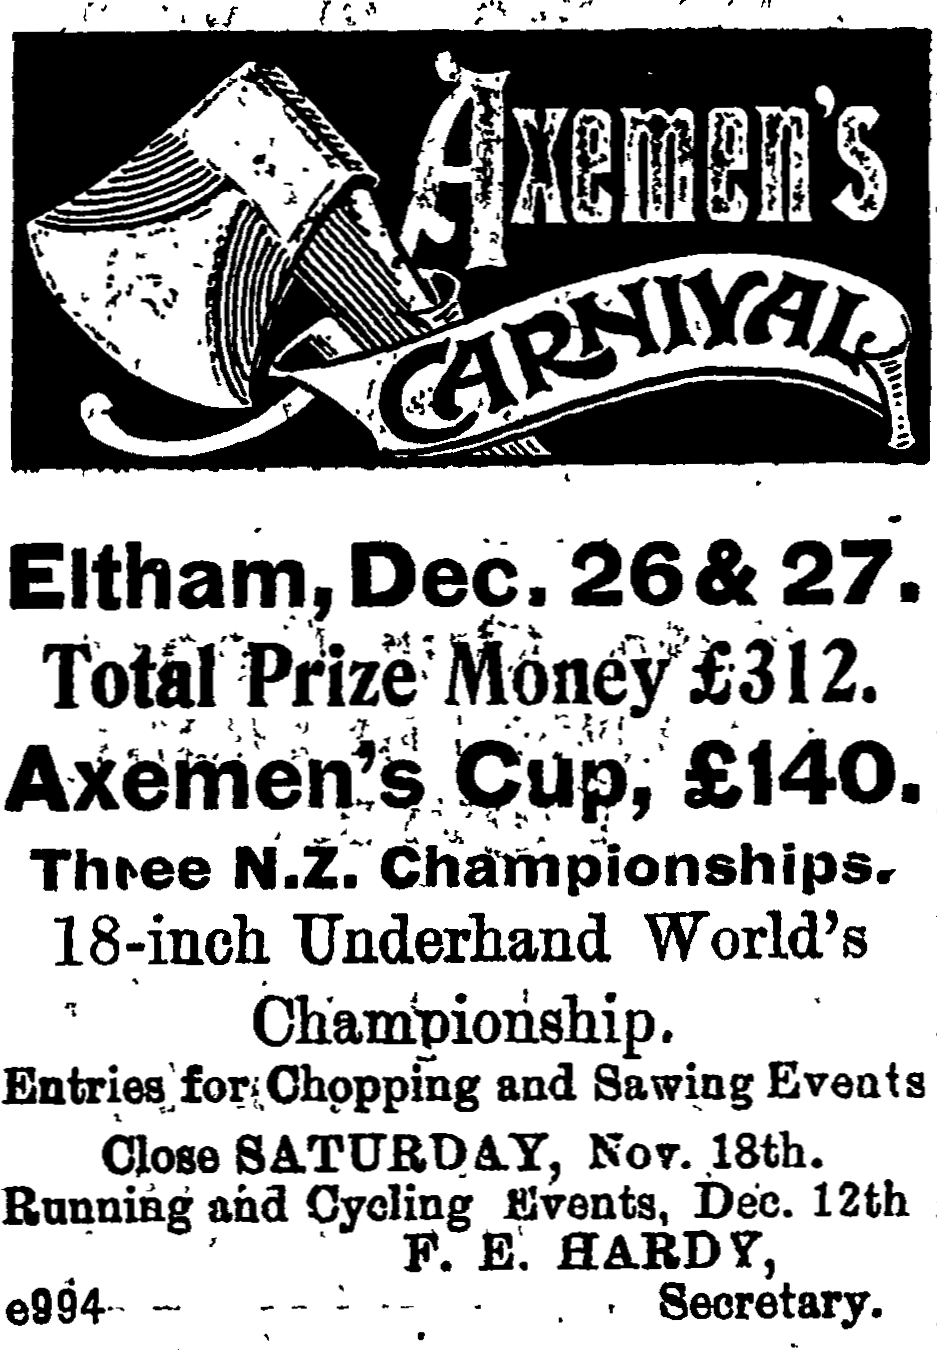 Newspaper  advertisement for the Axemen's Cup